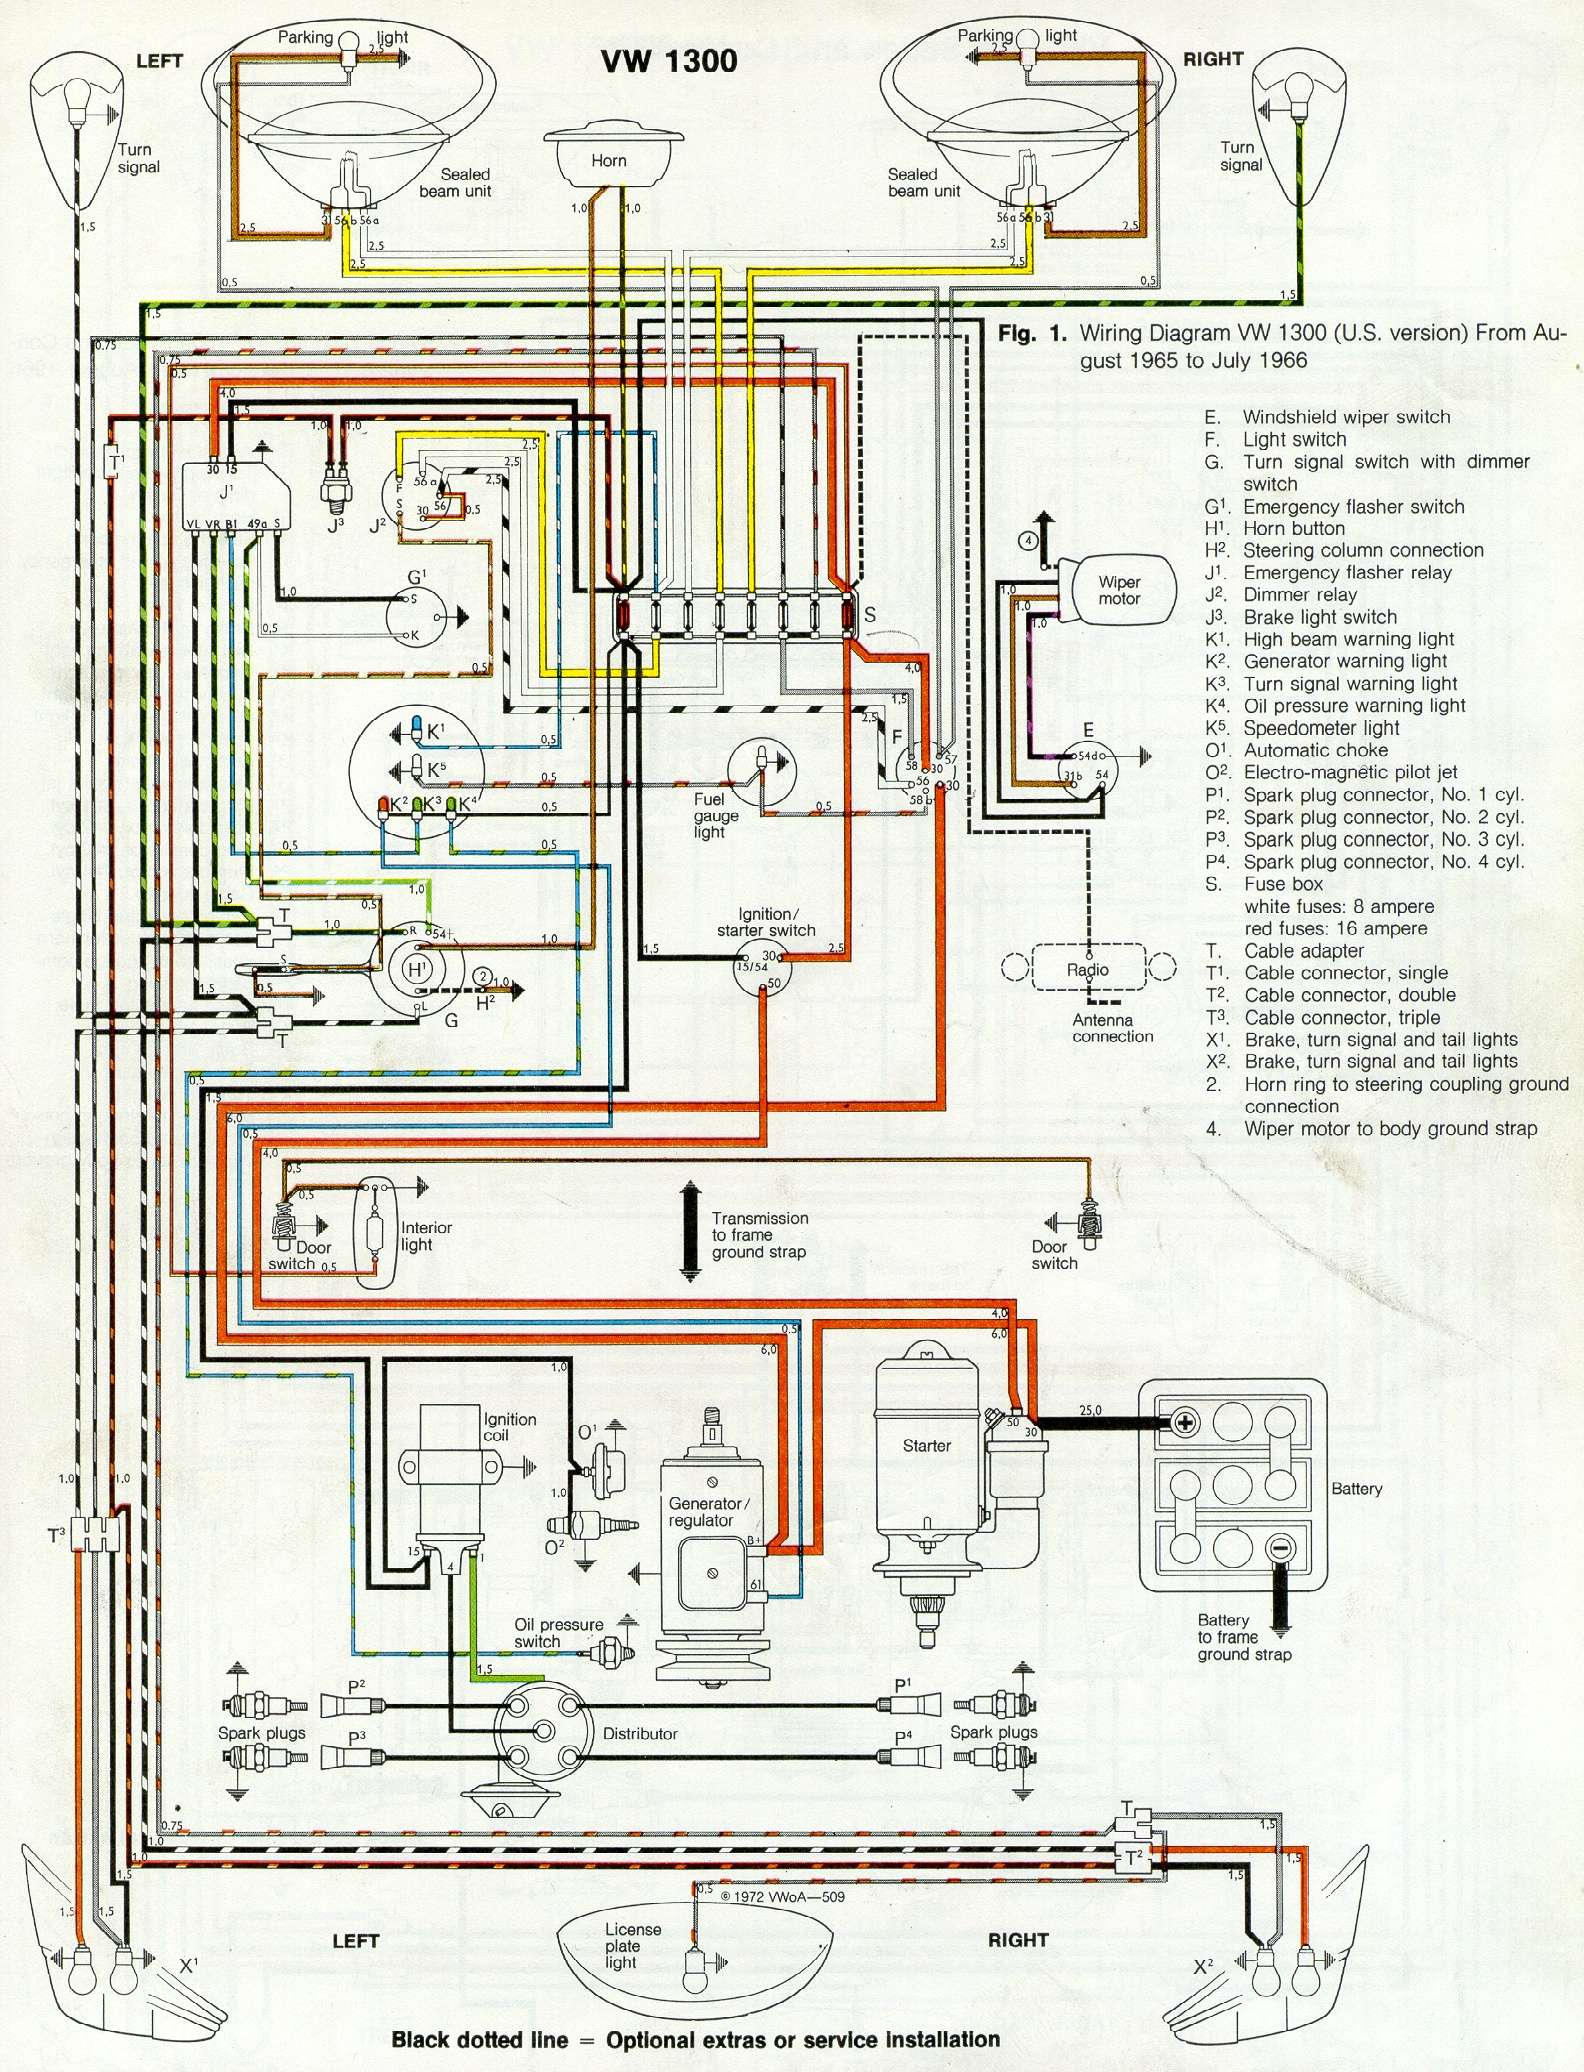 1968 vw type 1 wiring diagram accutrac brake controller diagrams all data thesamba com beetle